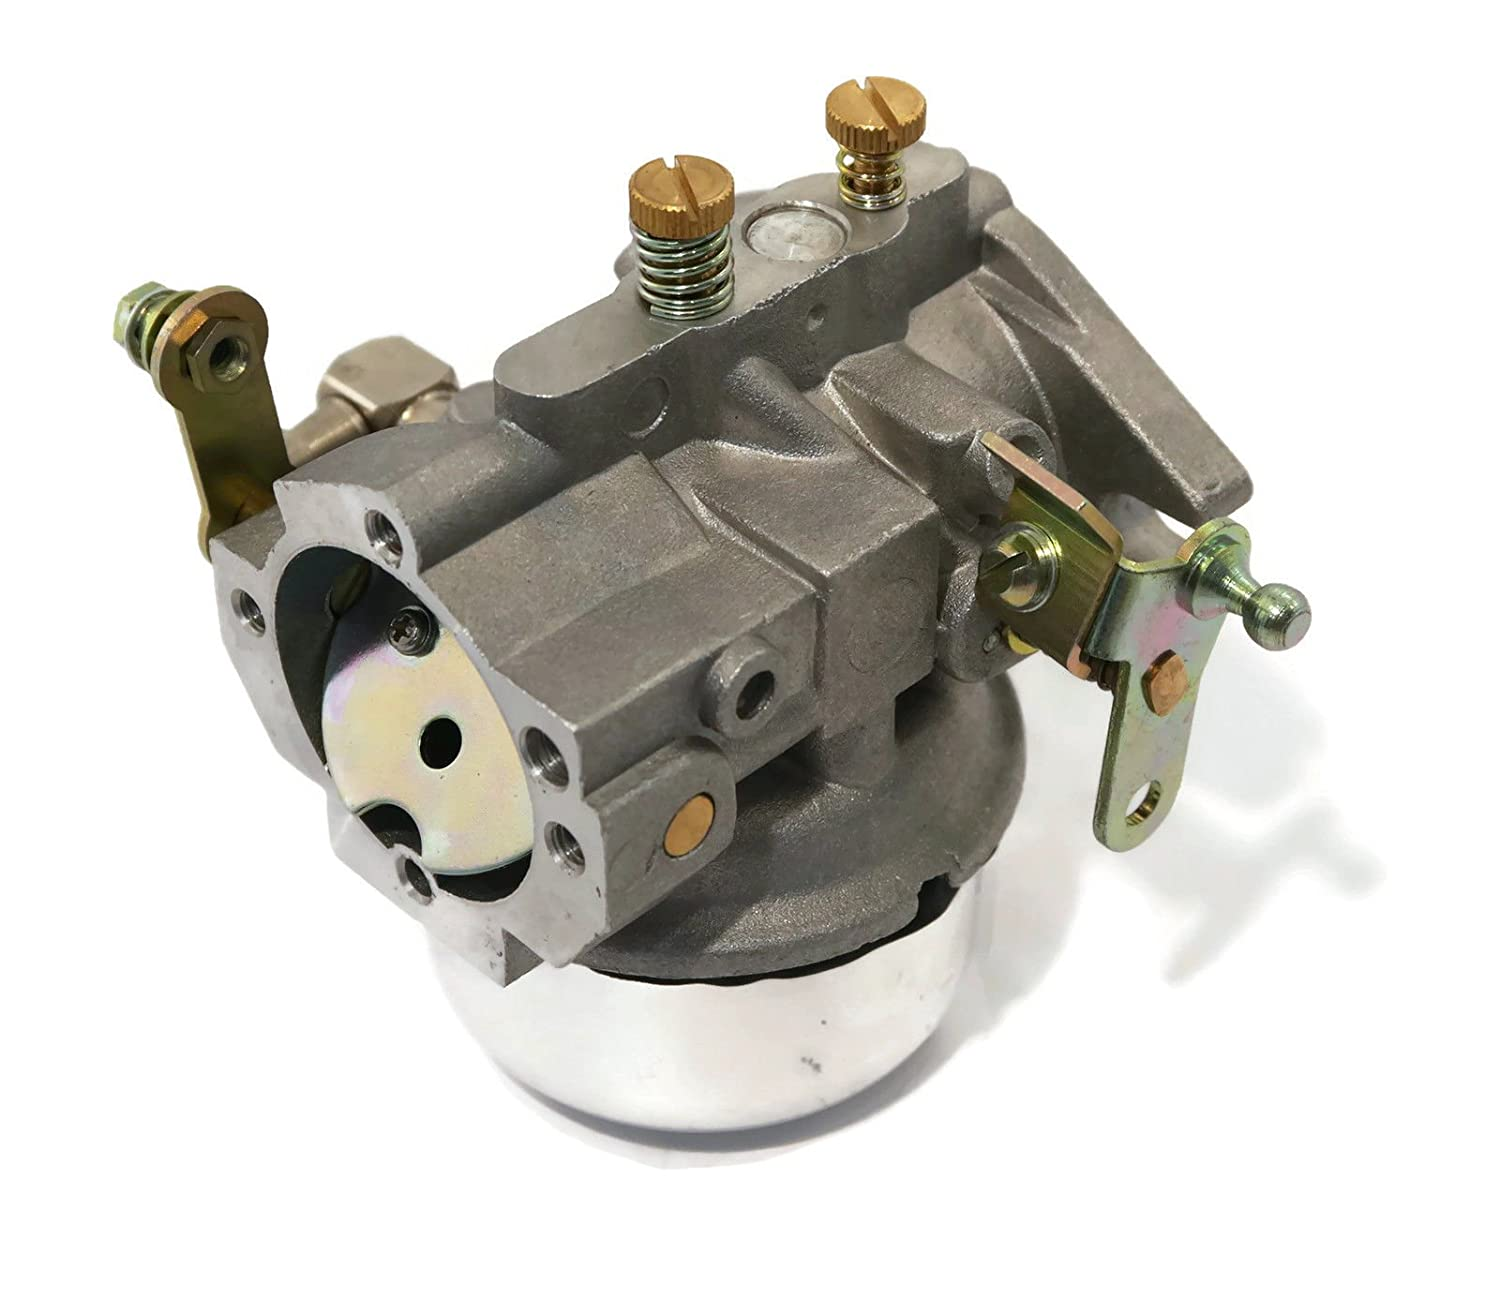 The ROP Shop Replacement Carburetor/CARB for Kohler K582 23 HP - Cast Iron Twin Cylinder